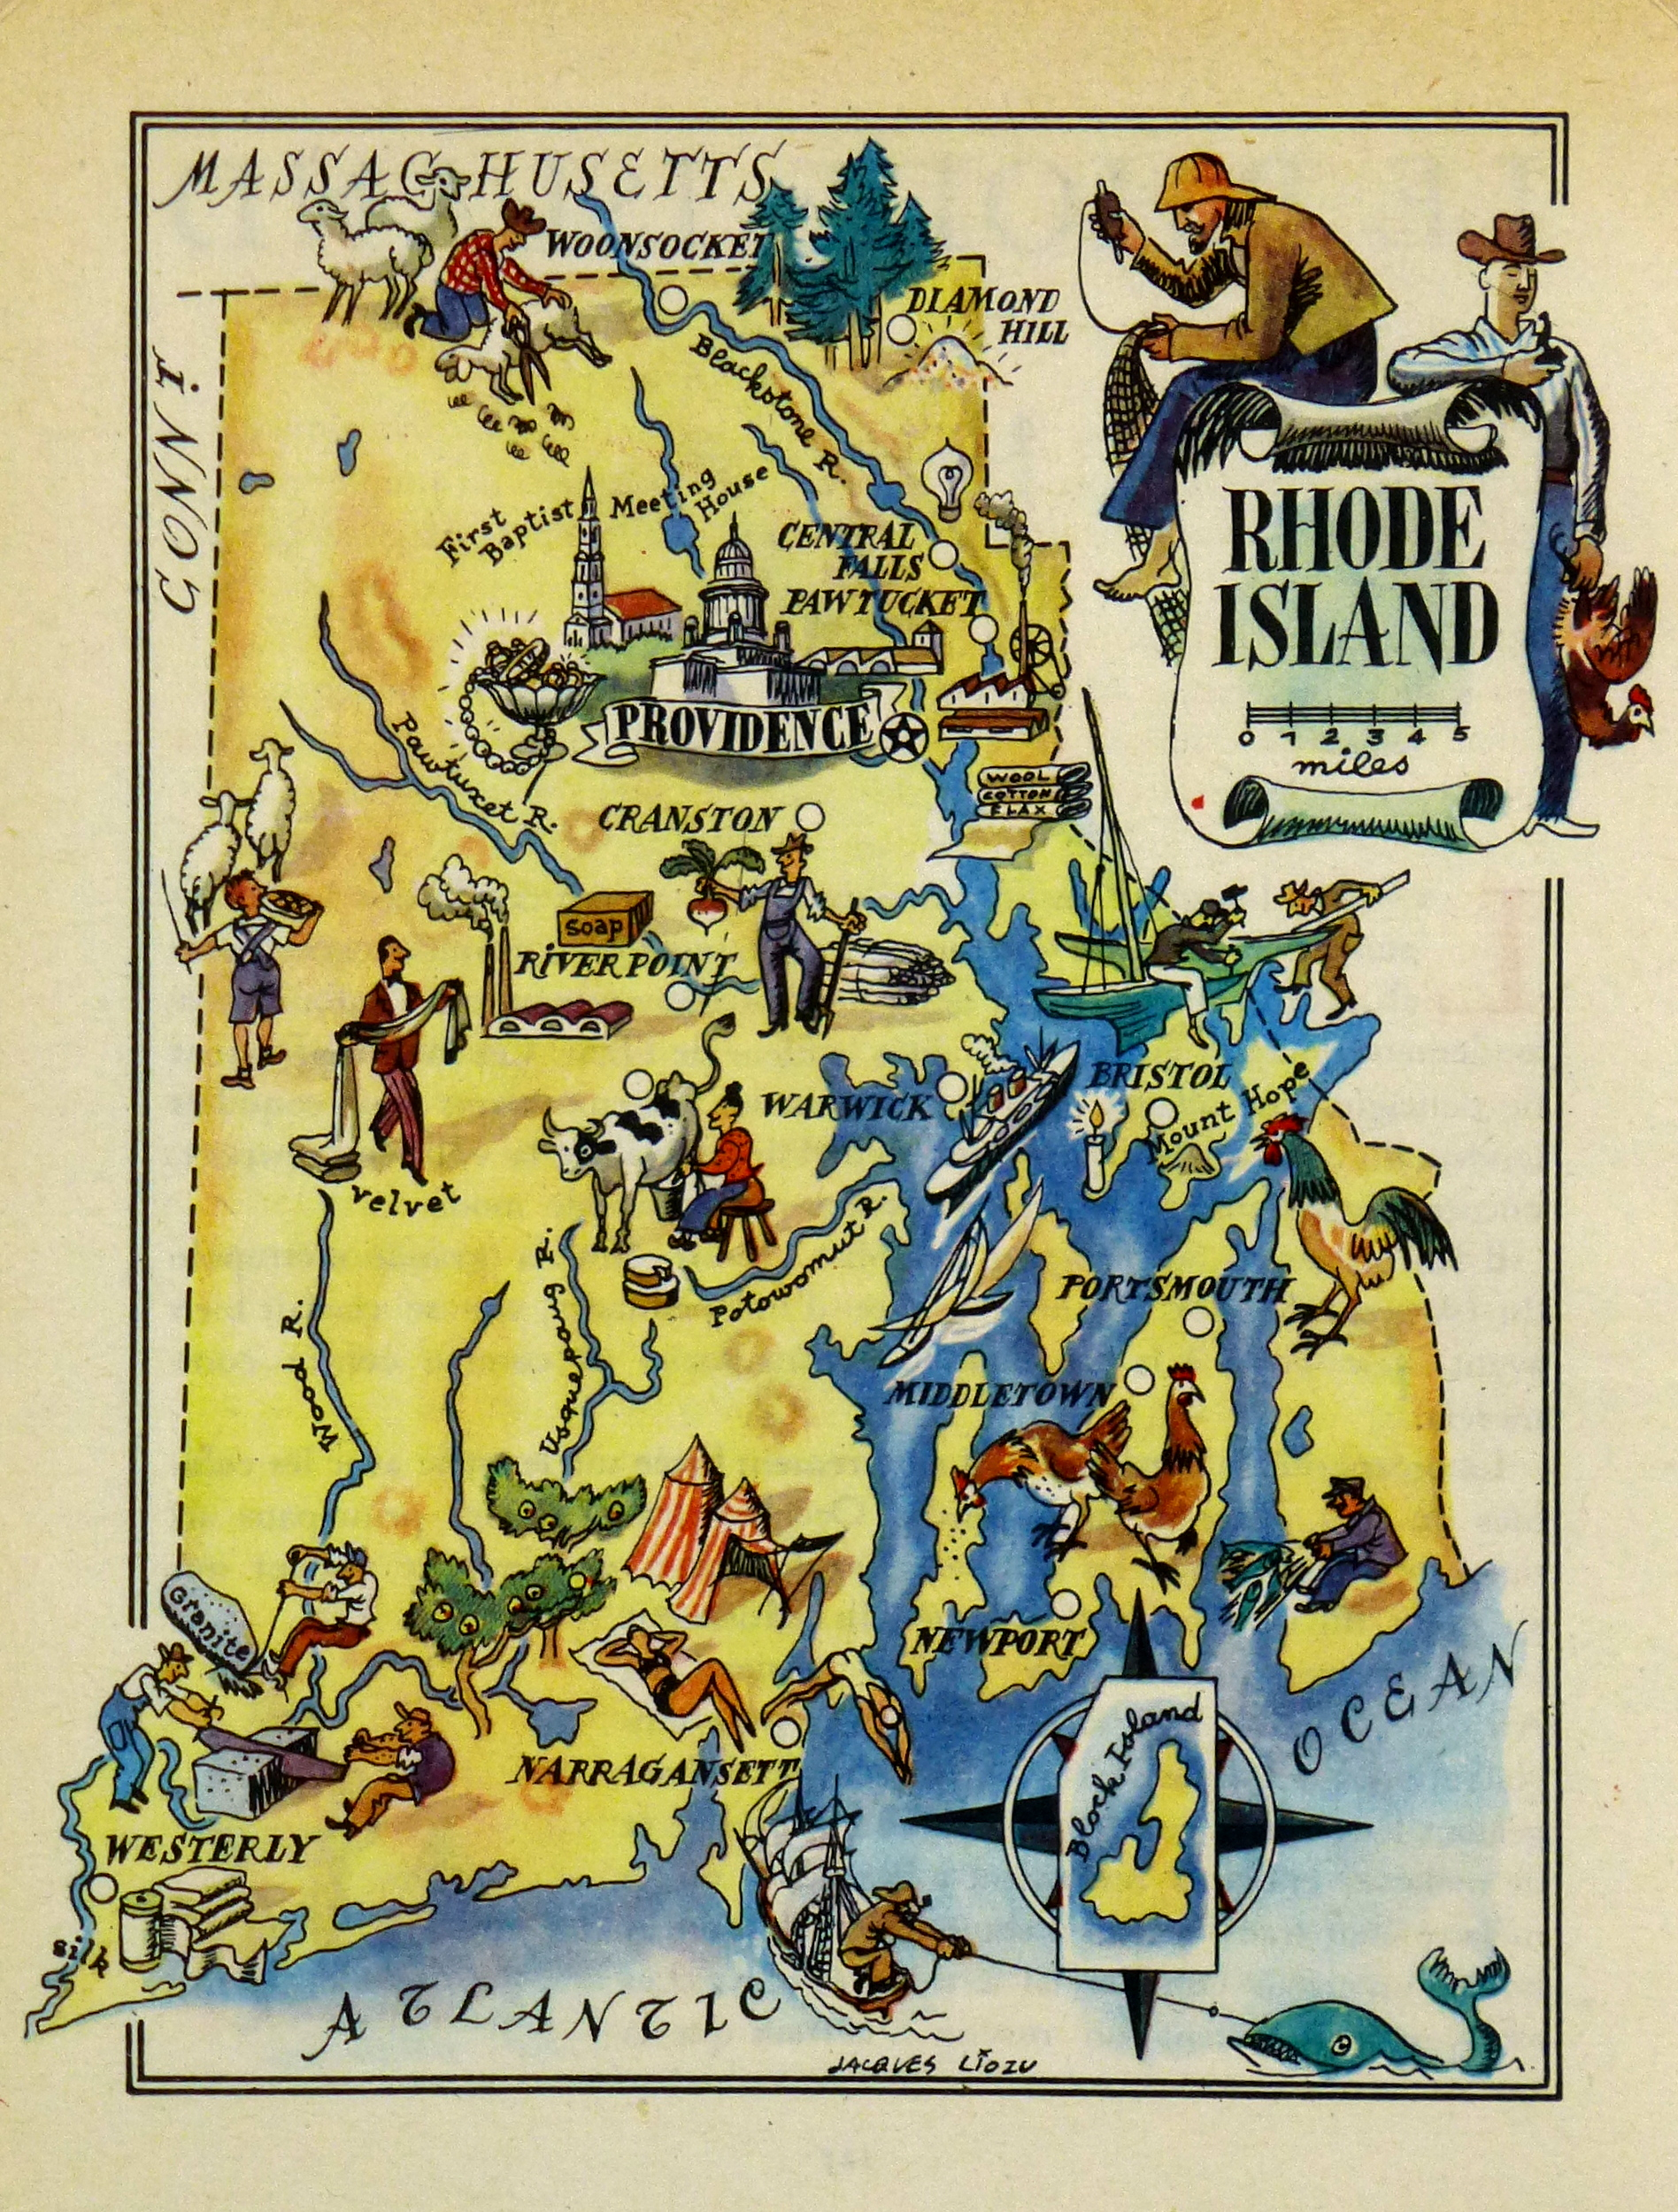 Rhode Island Pictorial Map, 1946-main-6238K